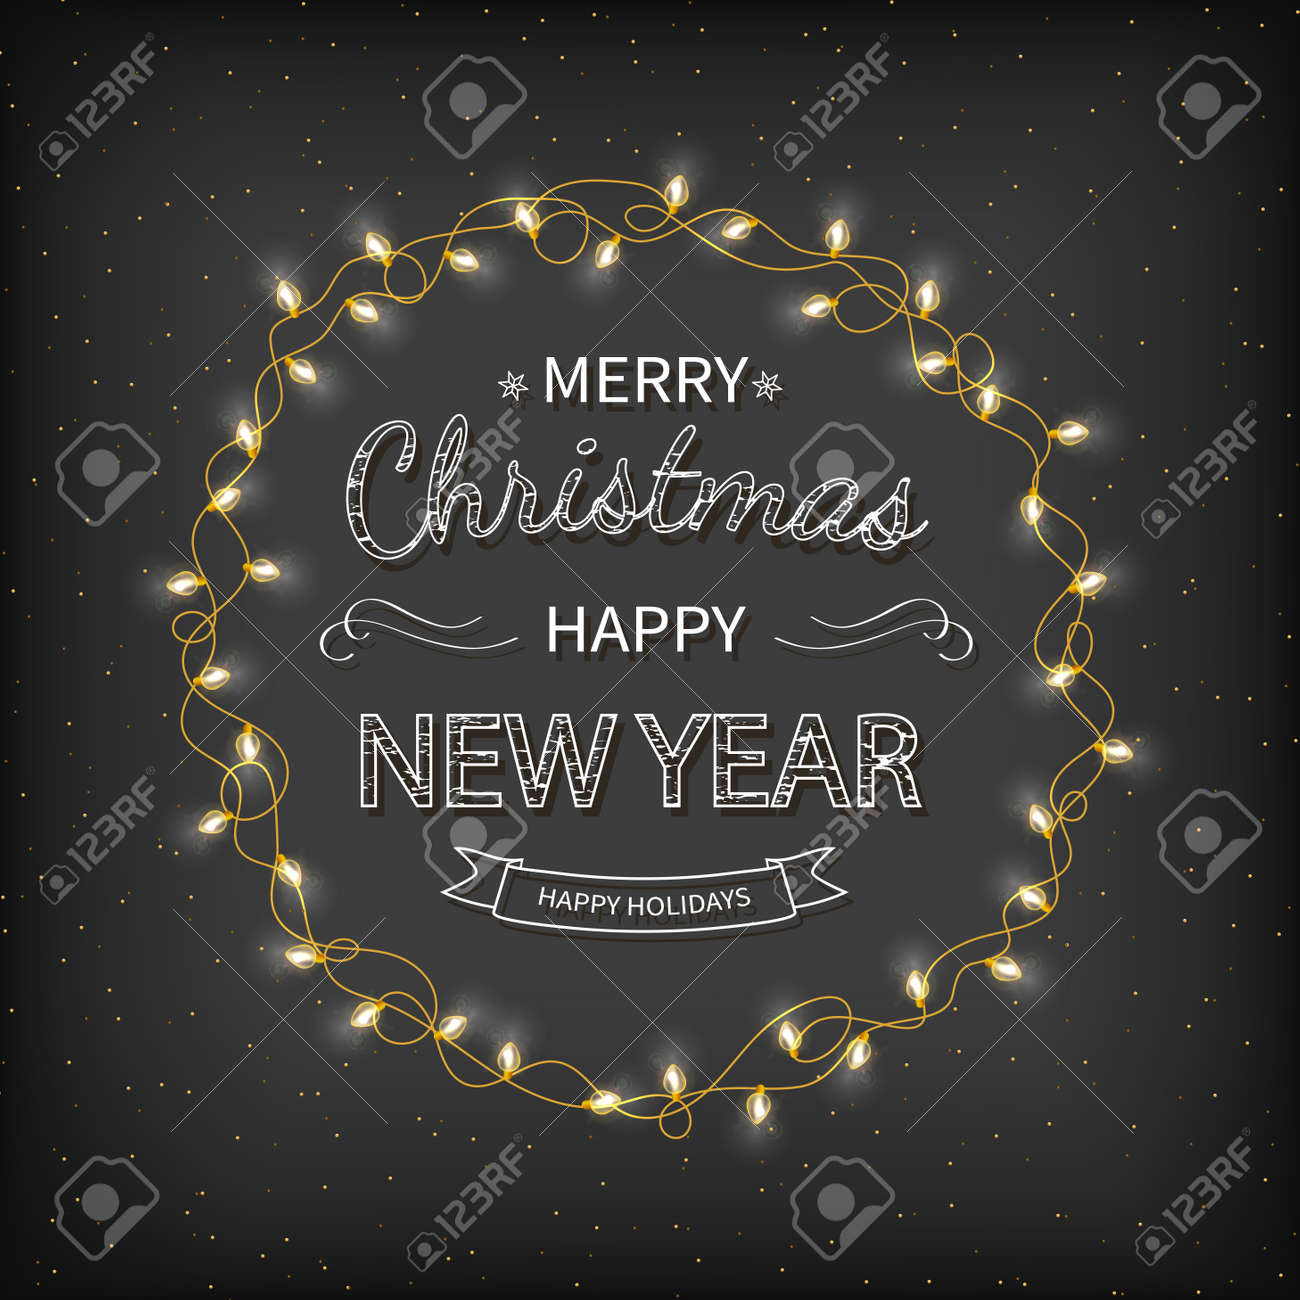 Merry Christmas and Happy New Year Greeting Background. Beautiful lettering with garlands, golden confetti tinsel on a black background. Xmas card Vector illustration - 155836507